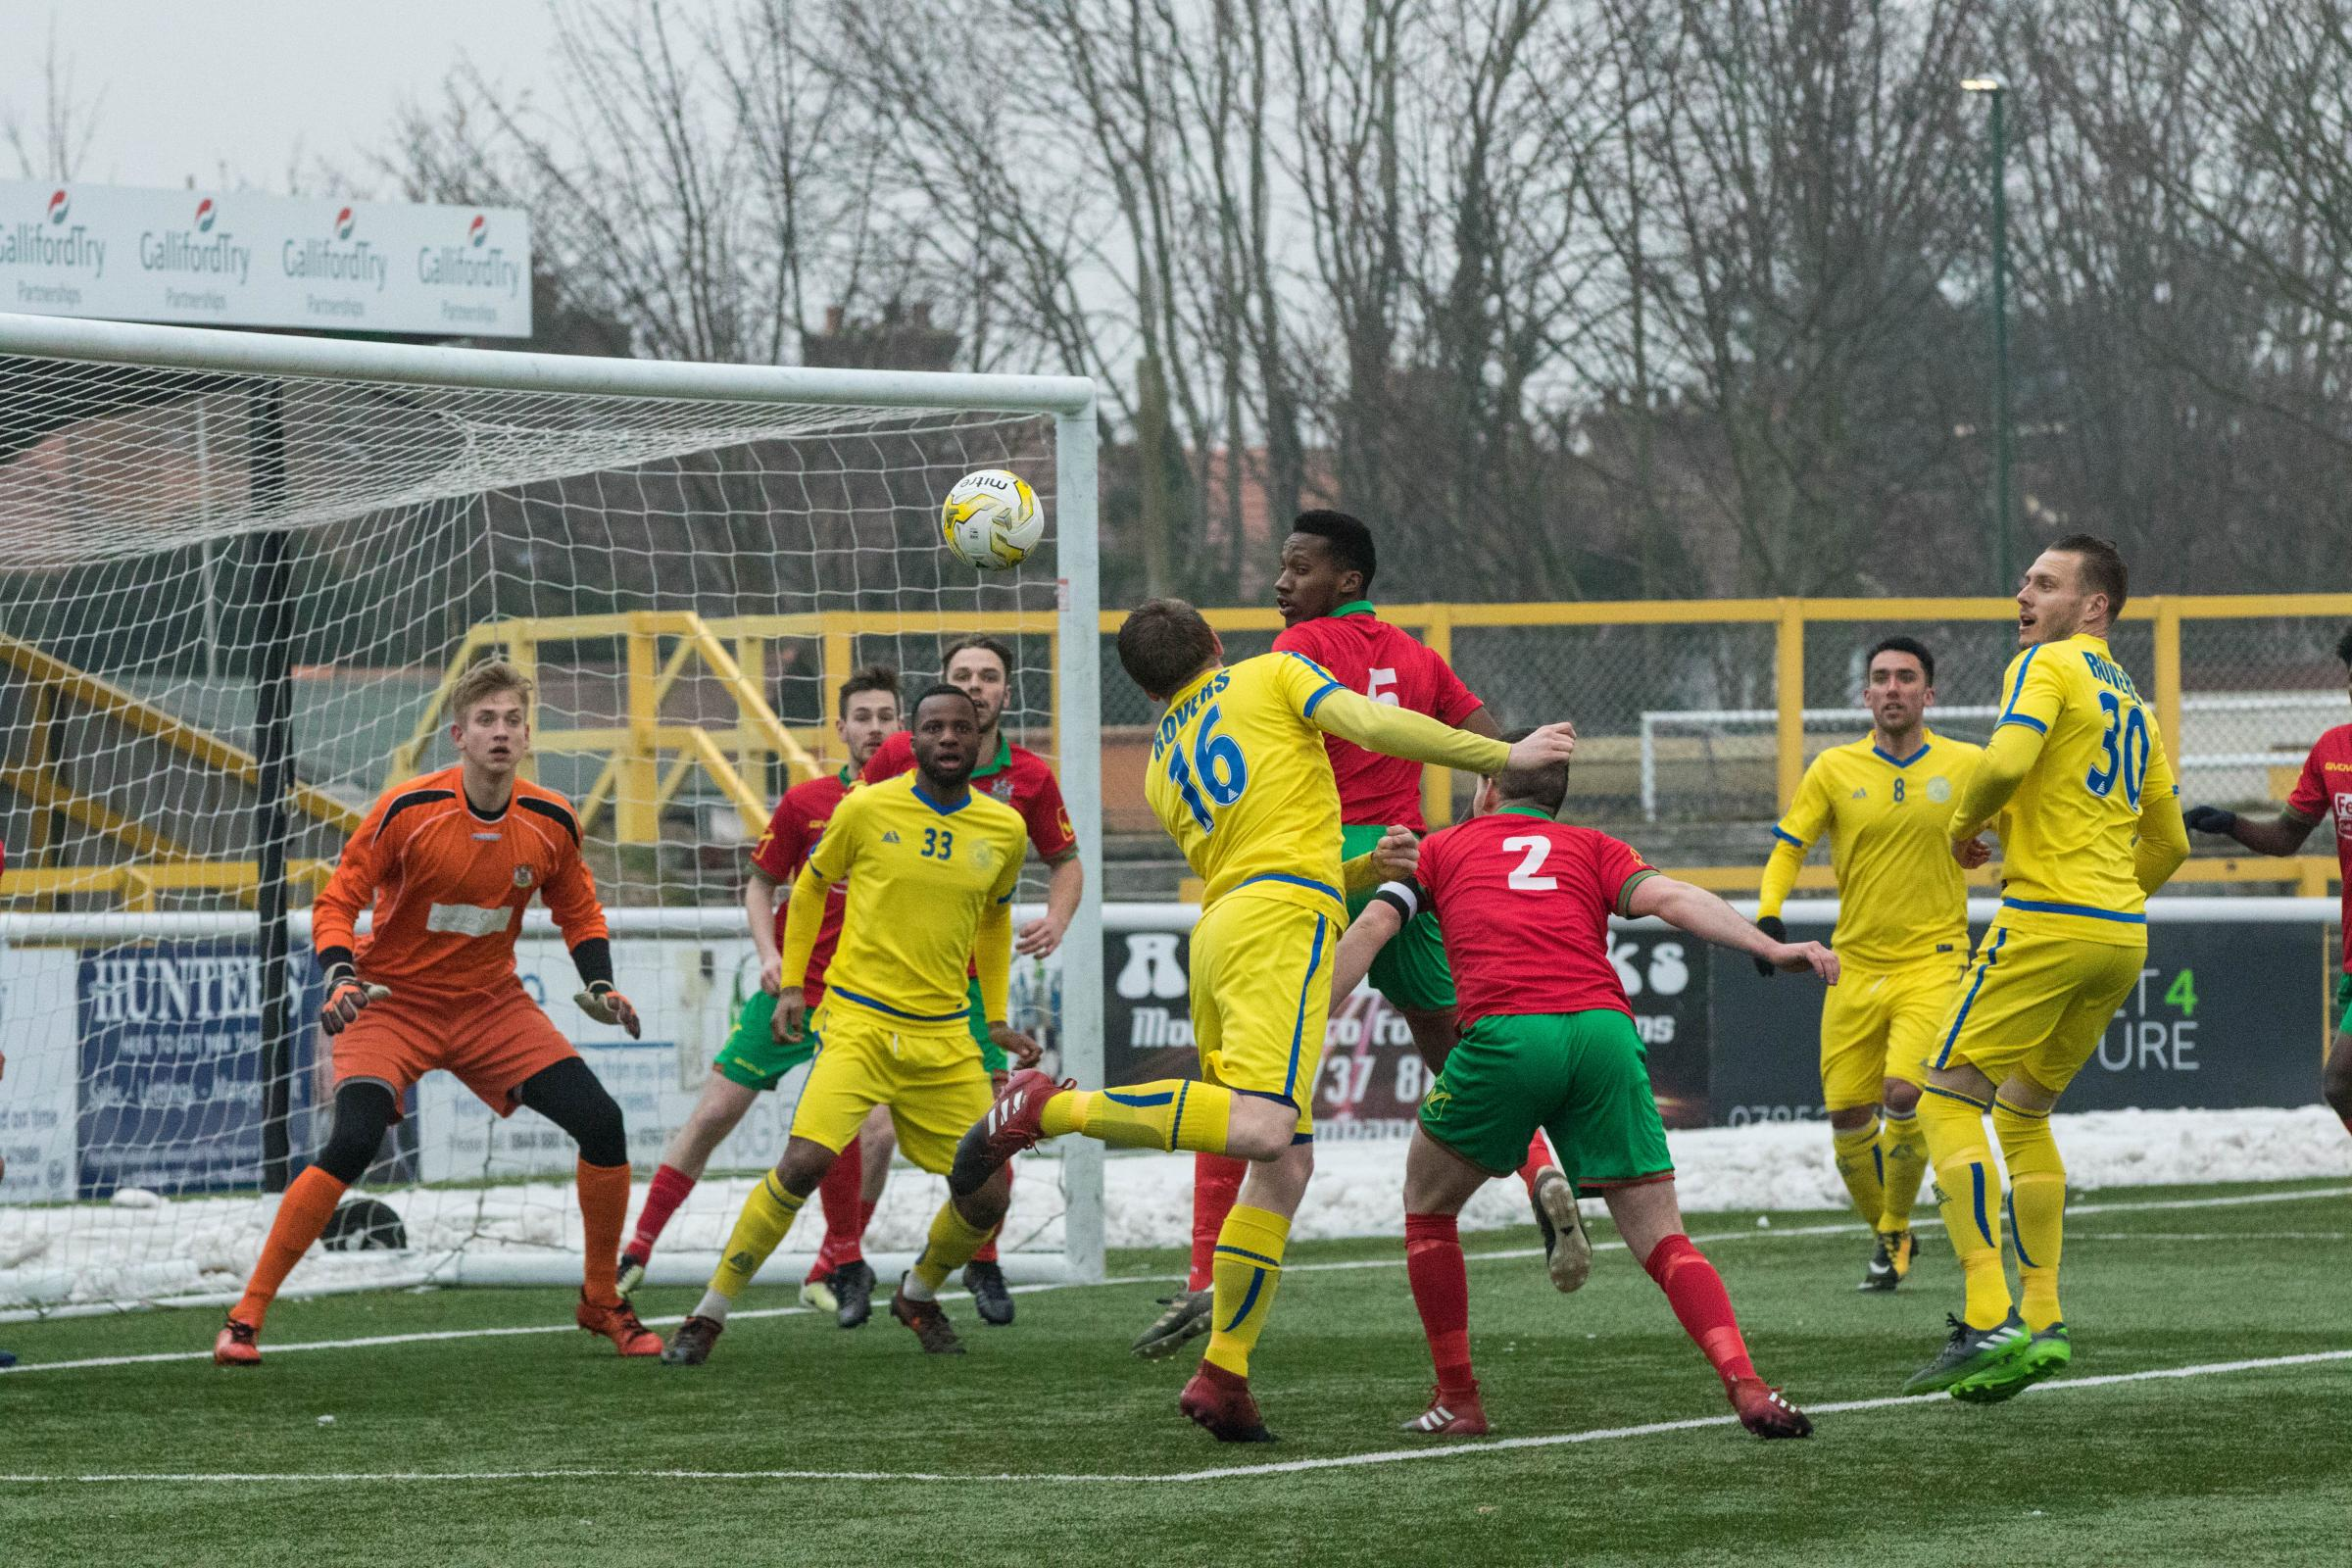 Sutton Common Rovers (yellow) ended their league campaign with a defeat at Balham